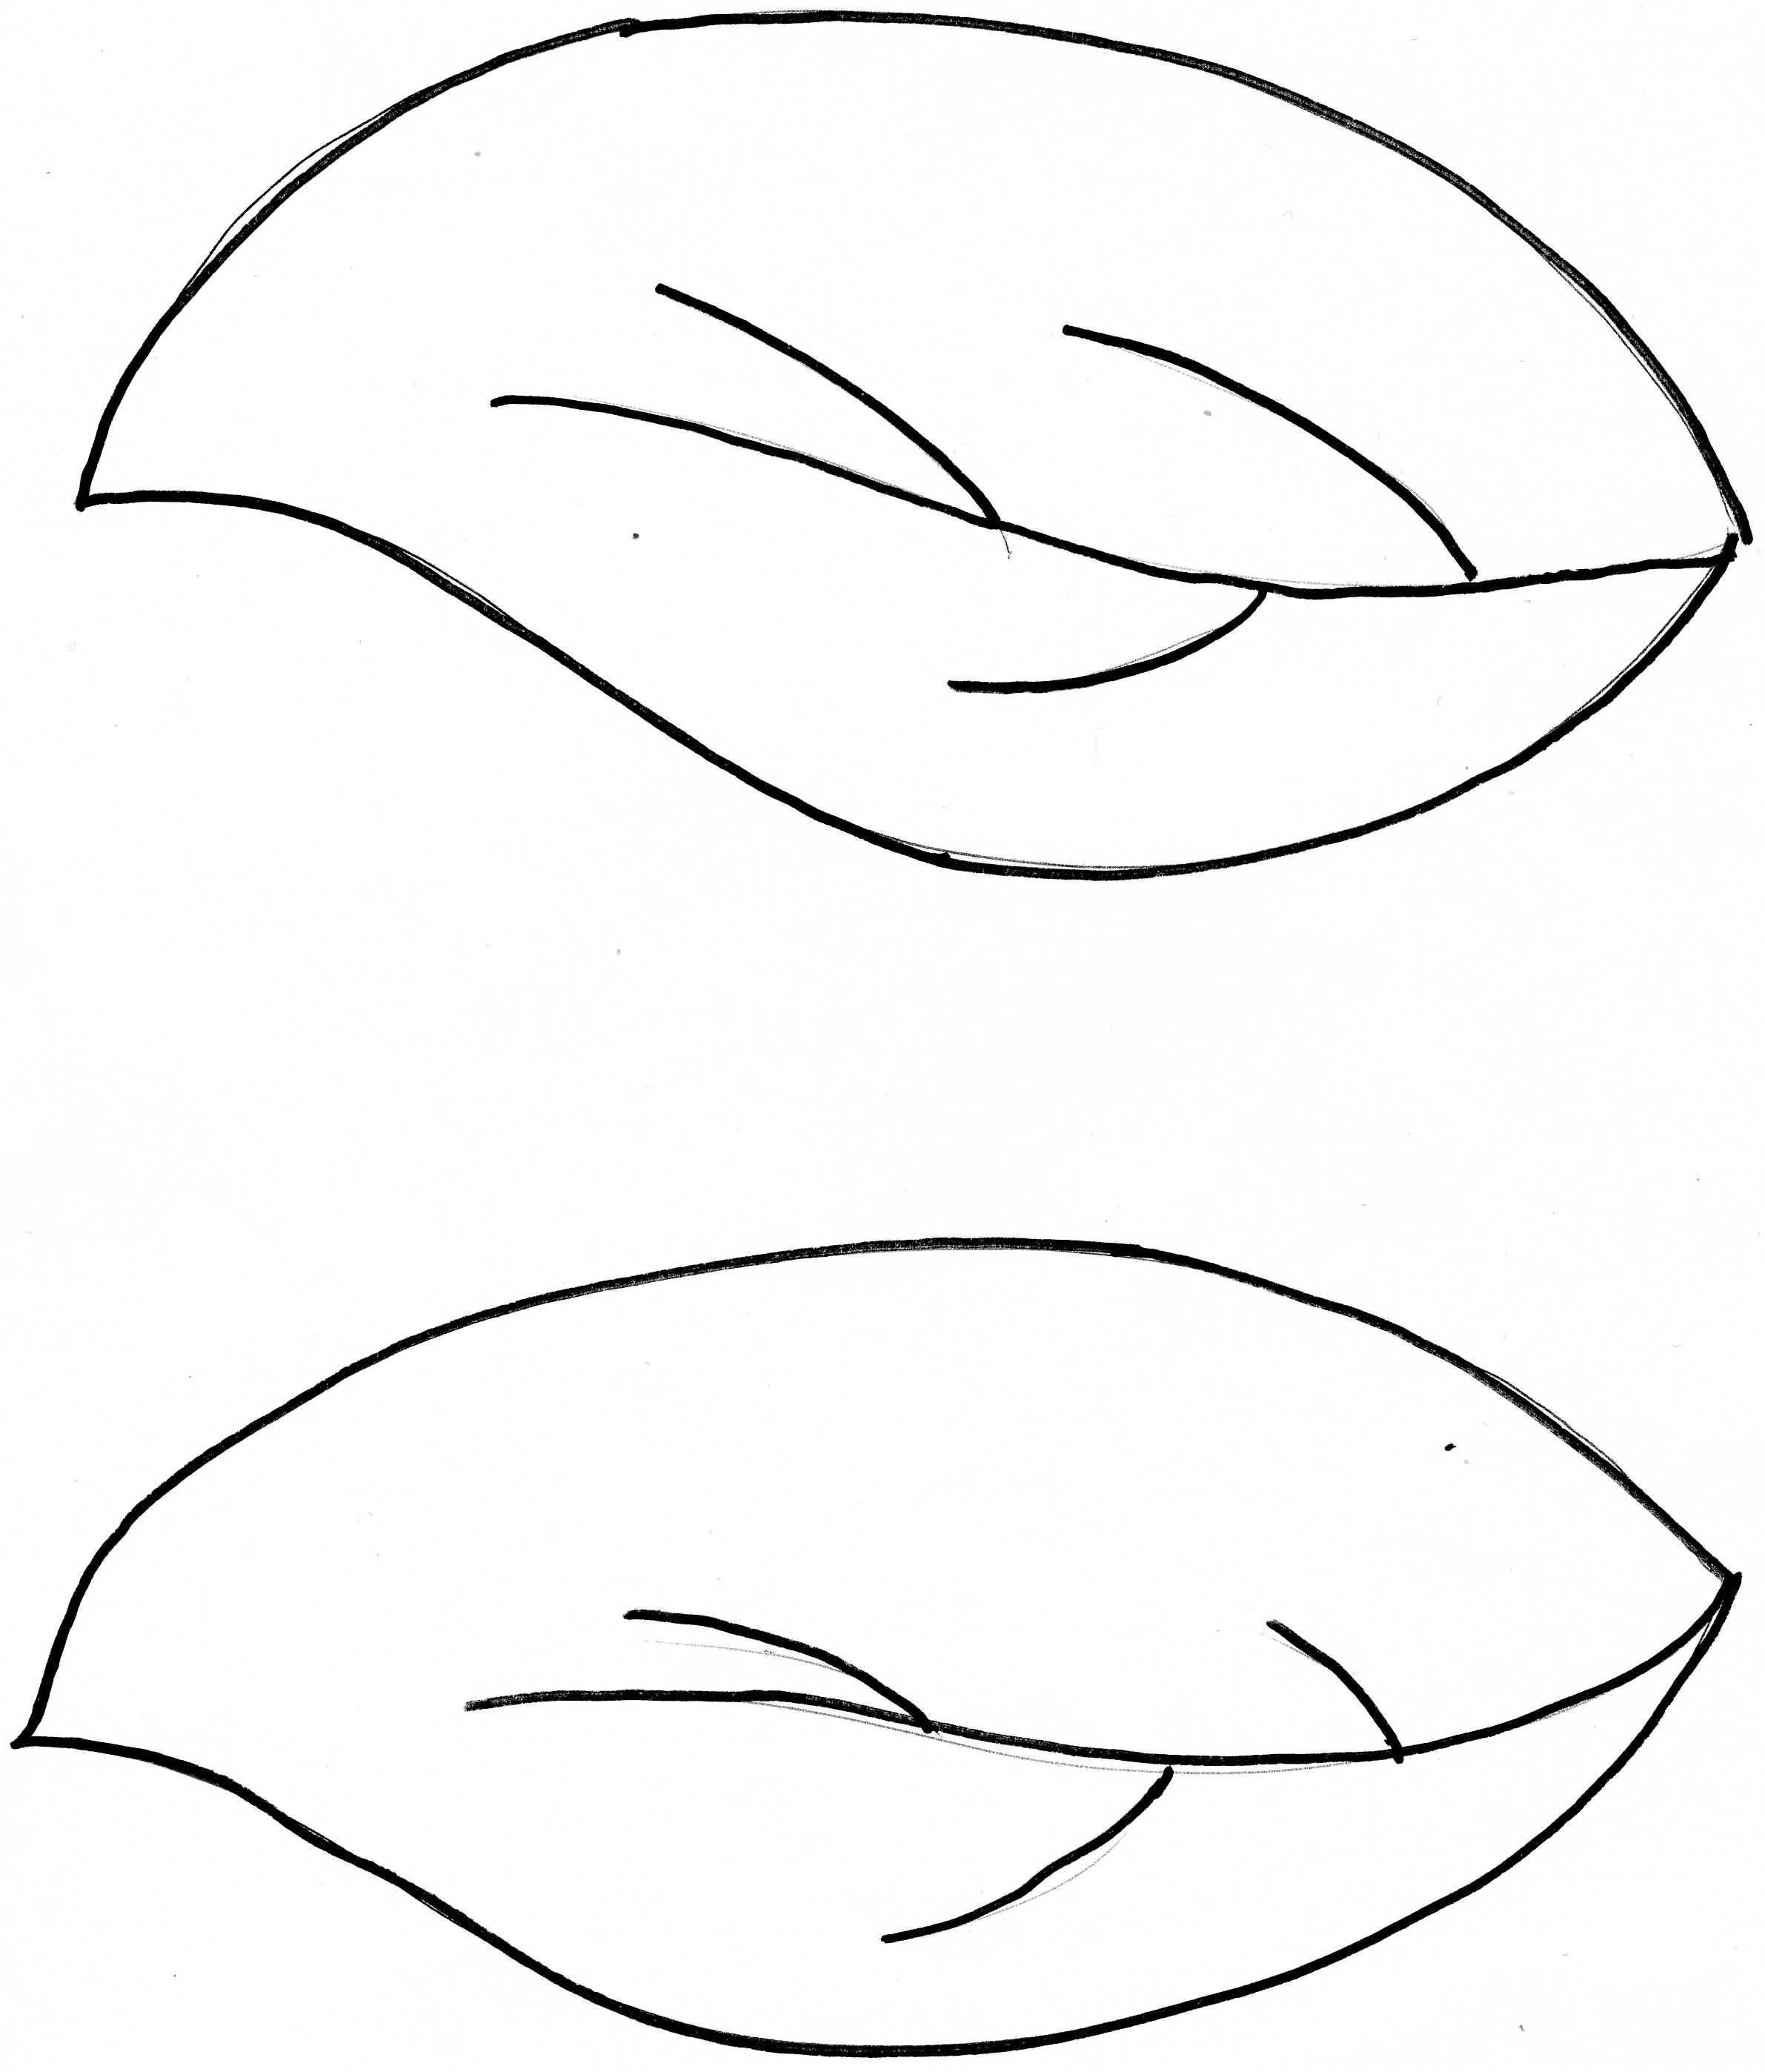 2382x2796 How To Draw Flower Leaves Coloring Pages Image